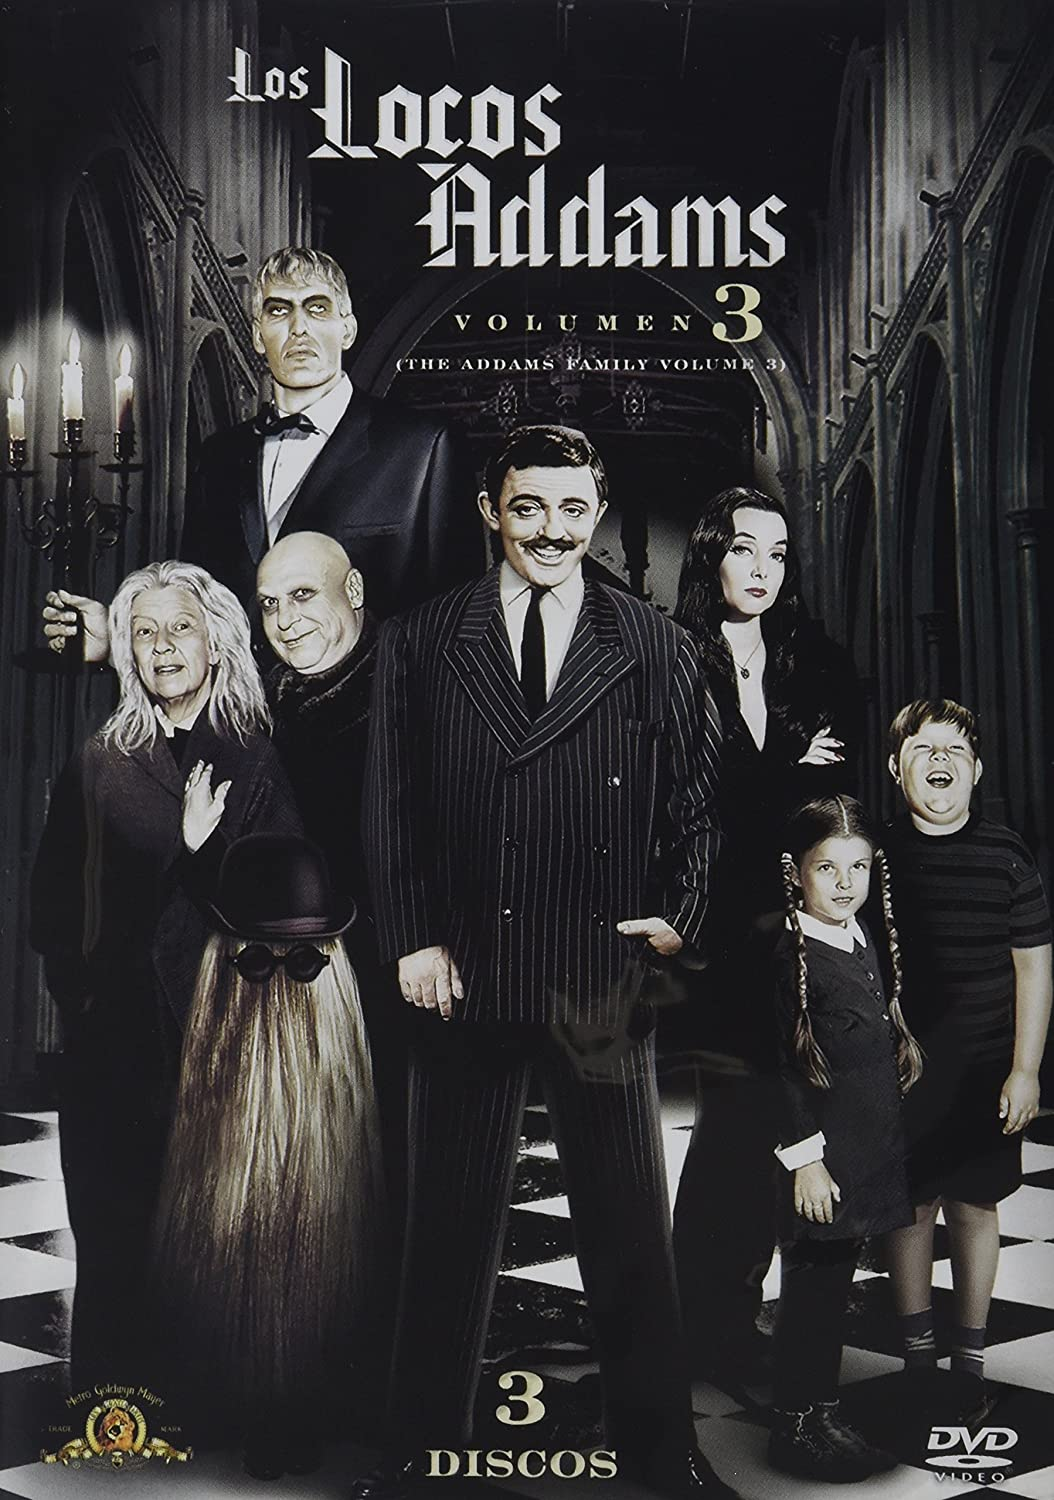 The Addams Family Volume 3 Los Locos Addams Volumen 3 Ntsc Region 1 4 Dvd Import Latin America Tv Series 1964 1966 3 Discs Subtitles English Spanish Portuguese Movies Tv